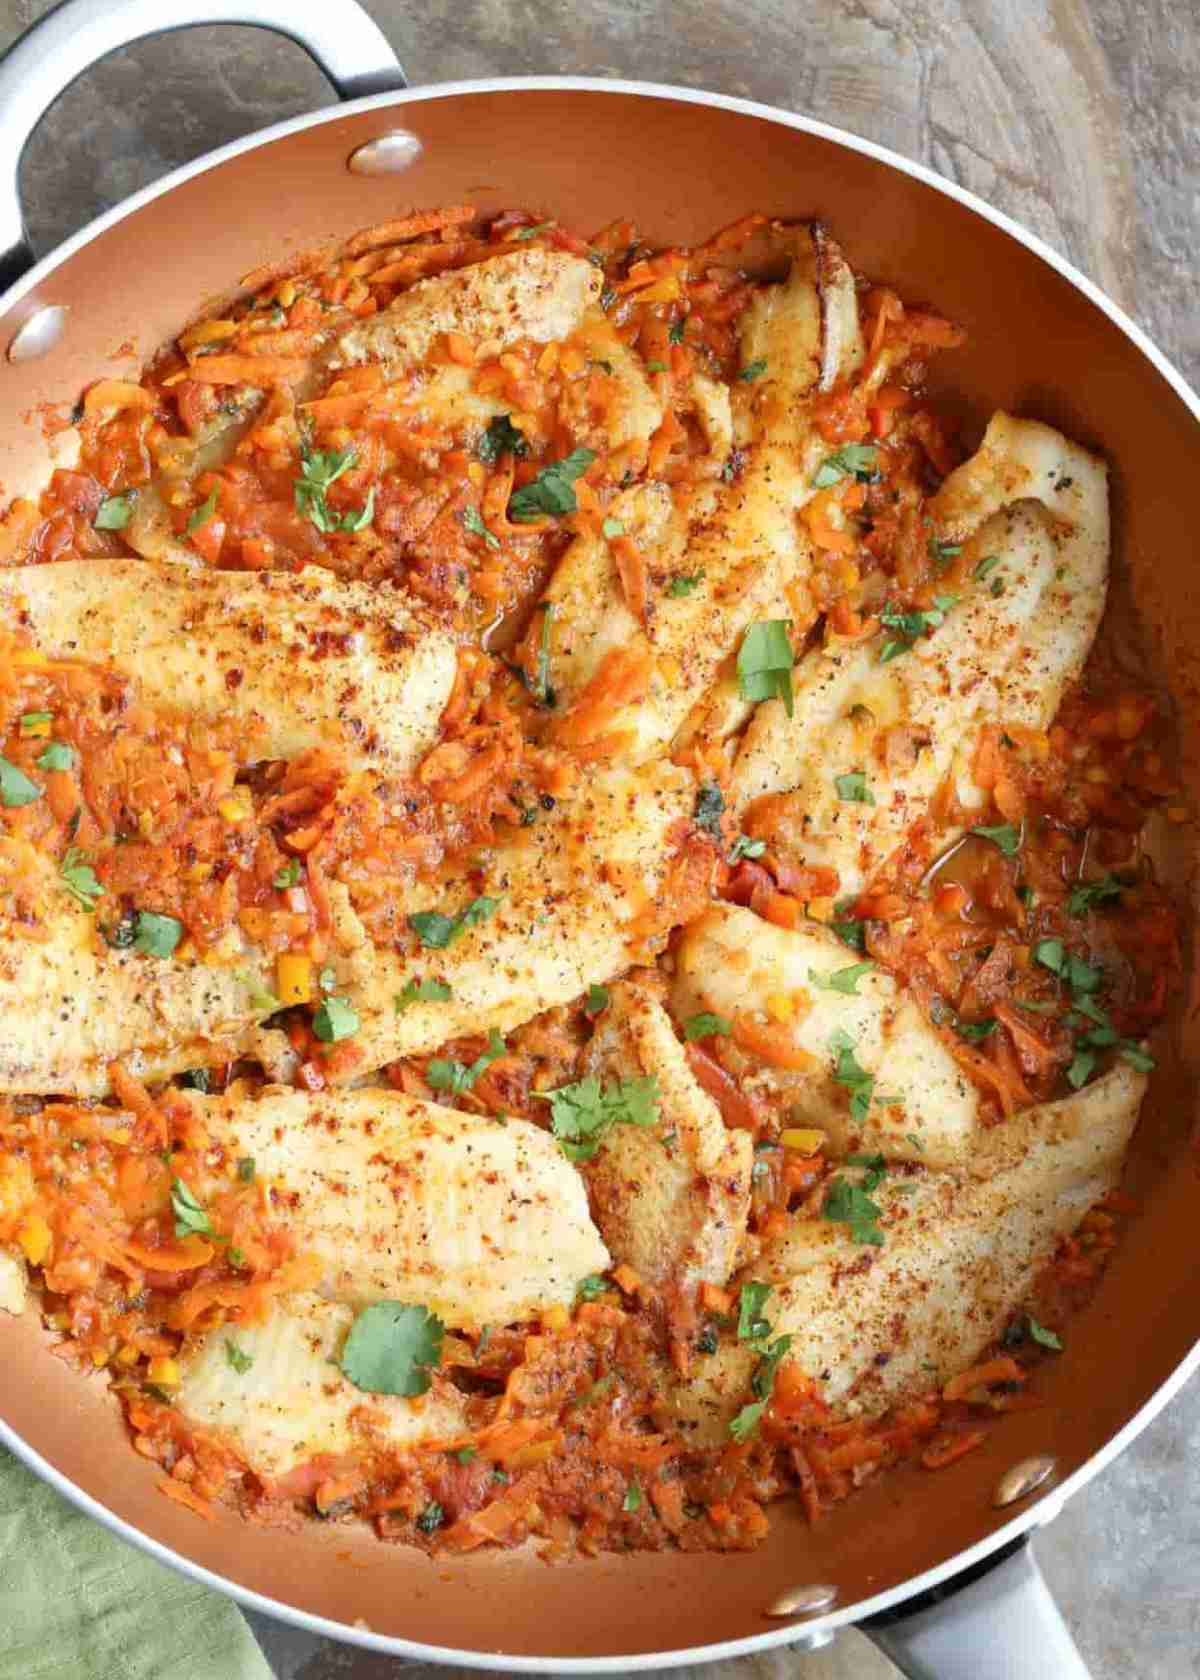 Flounder fish with vegetables recipe in a skillet.